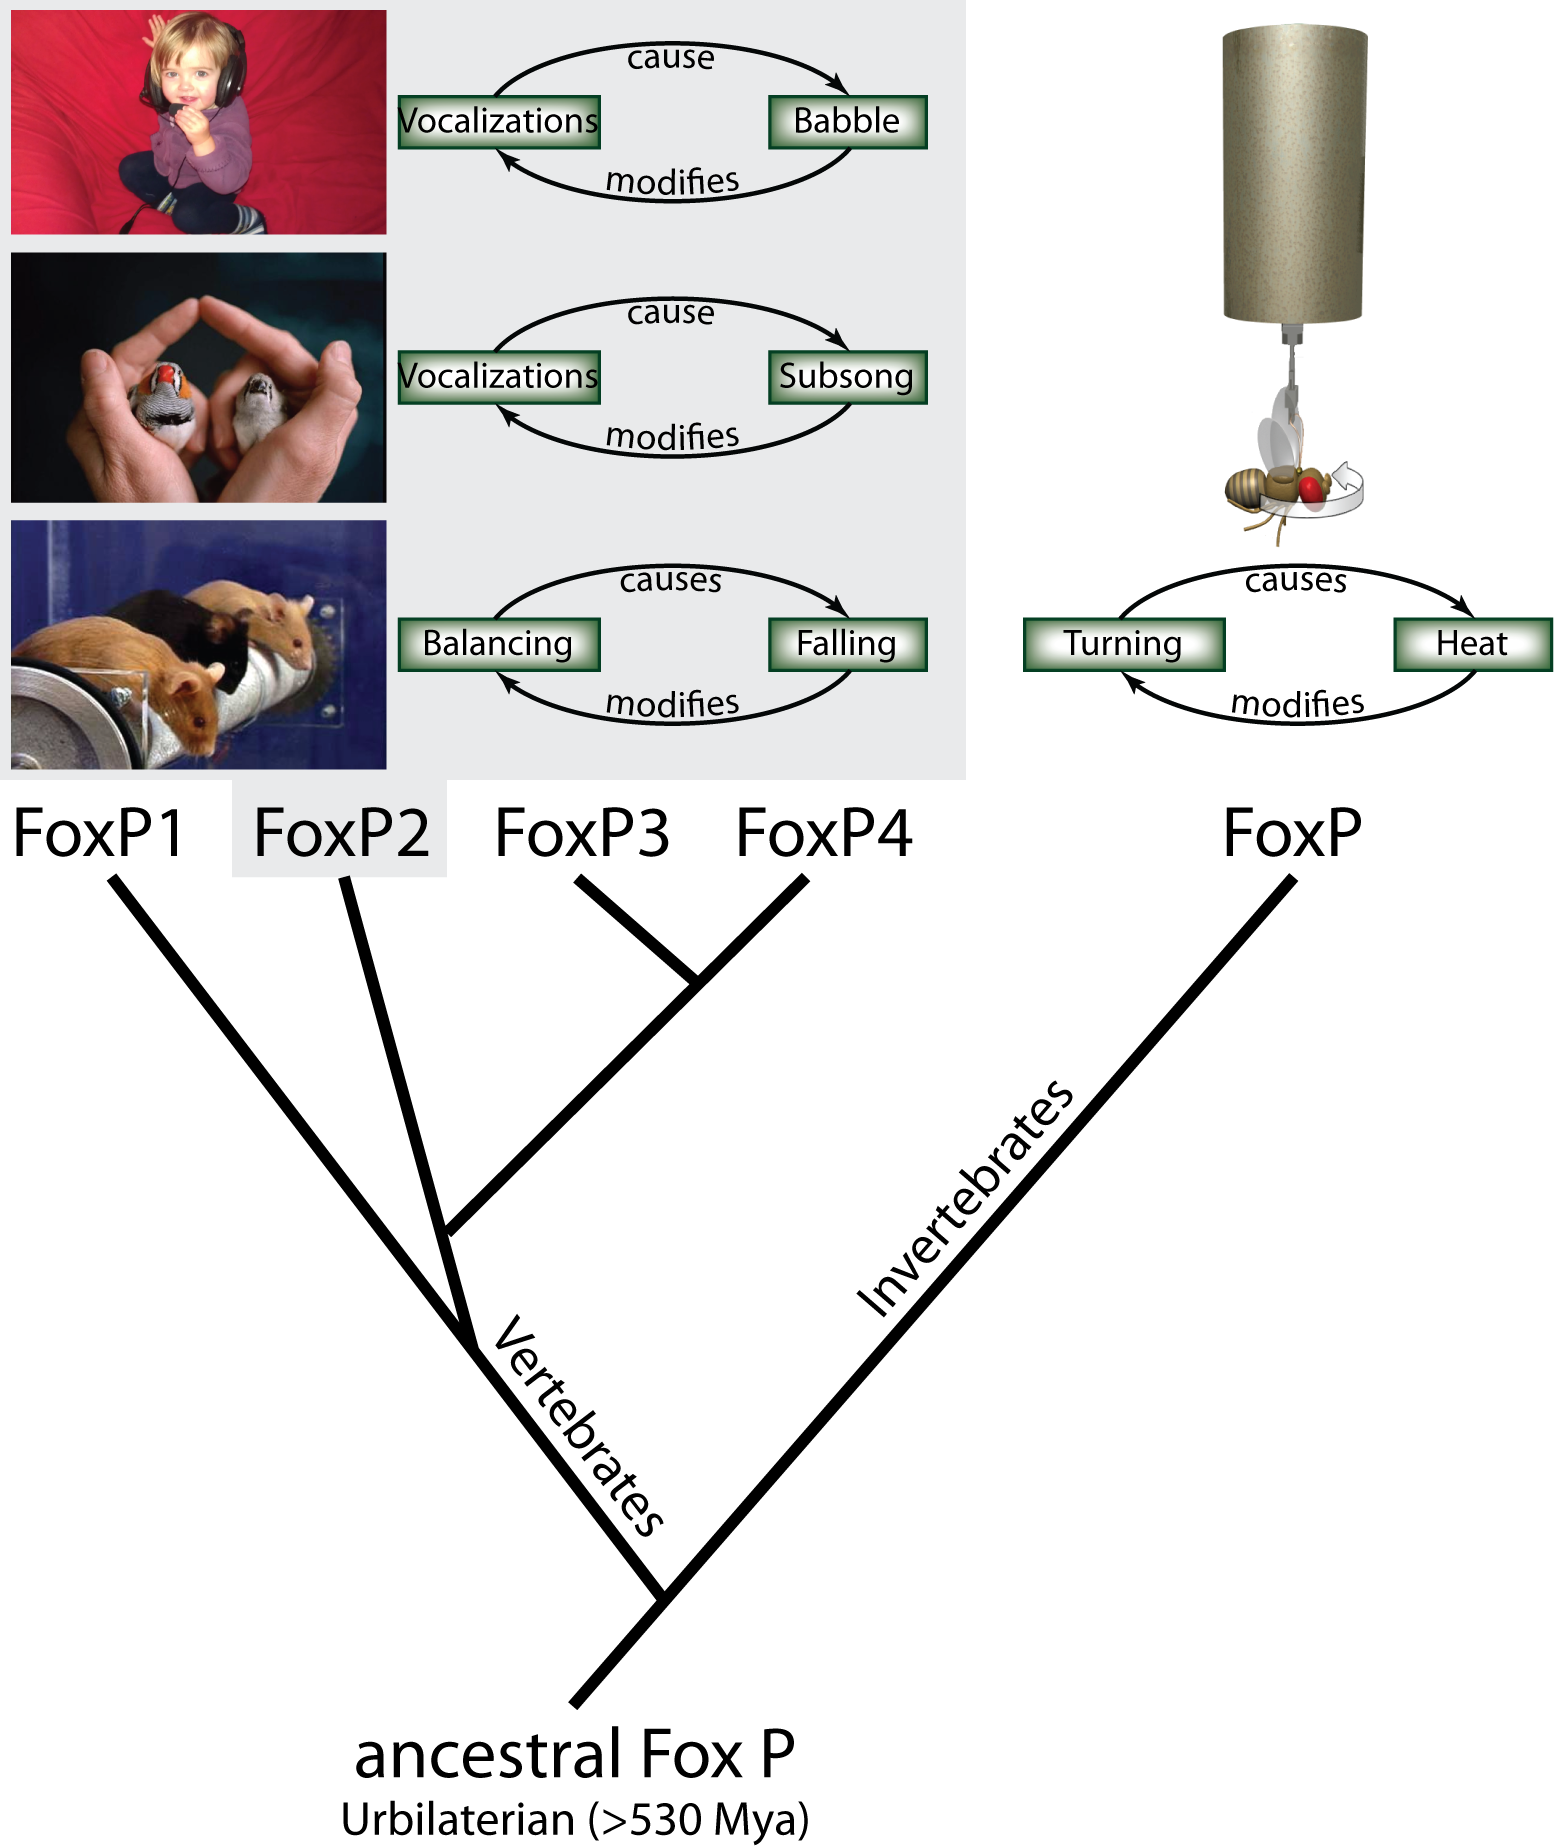 The Drosophila FoxP gene is necessary for operant self-learning